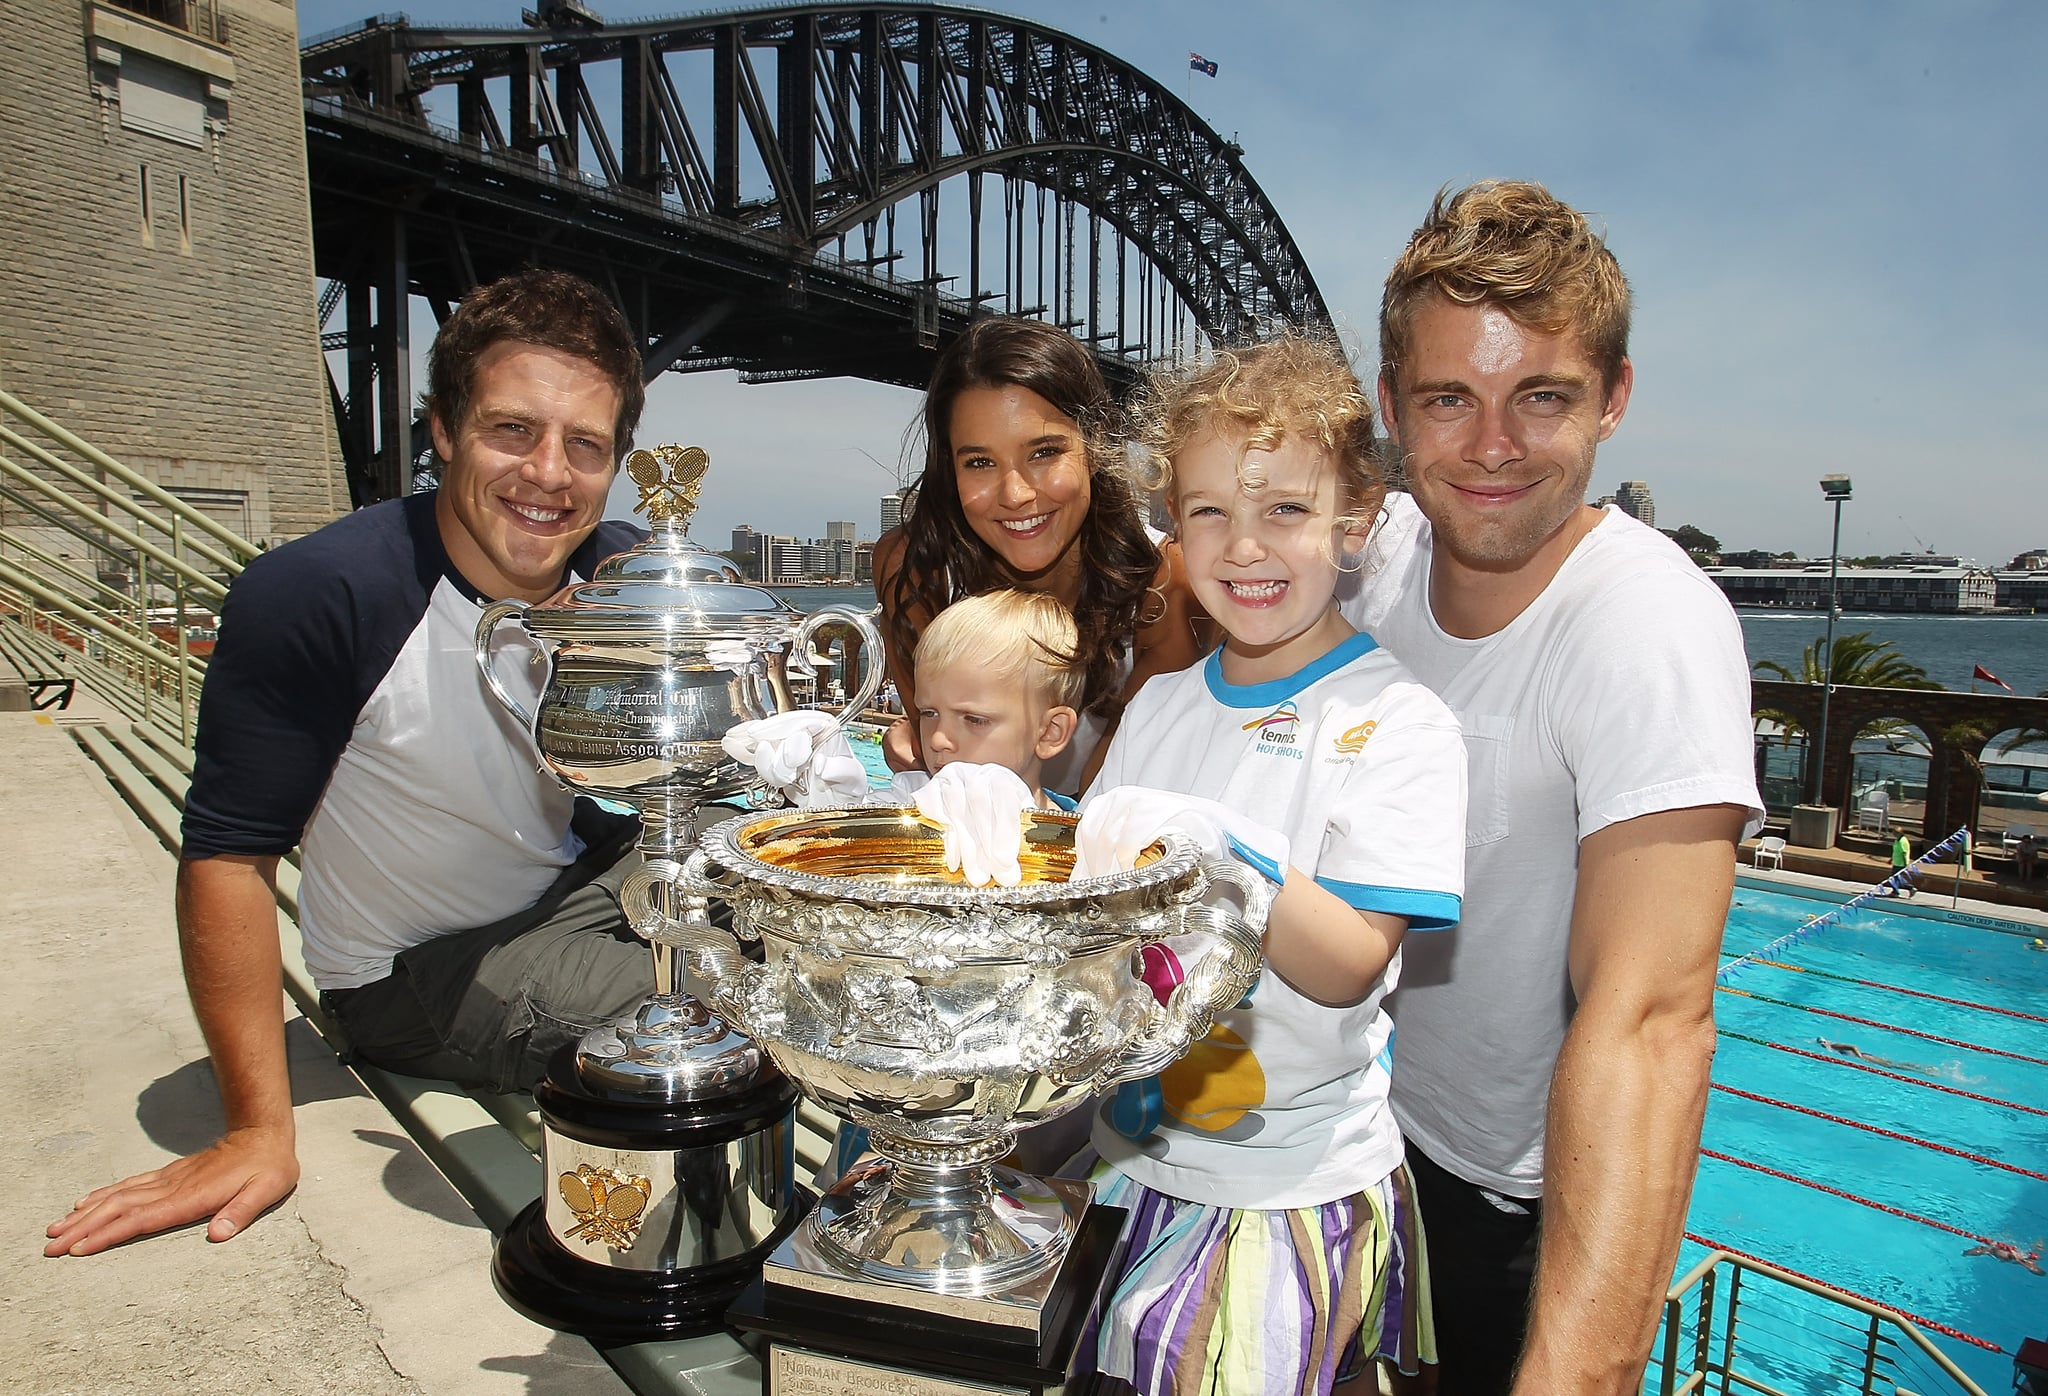 Steve Peacocke, Rhiannon Fish and Luke Mitchell